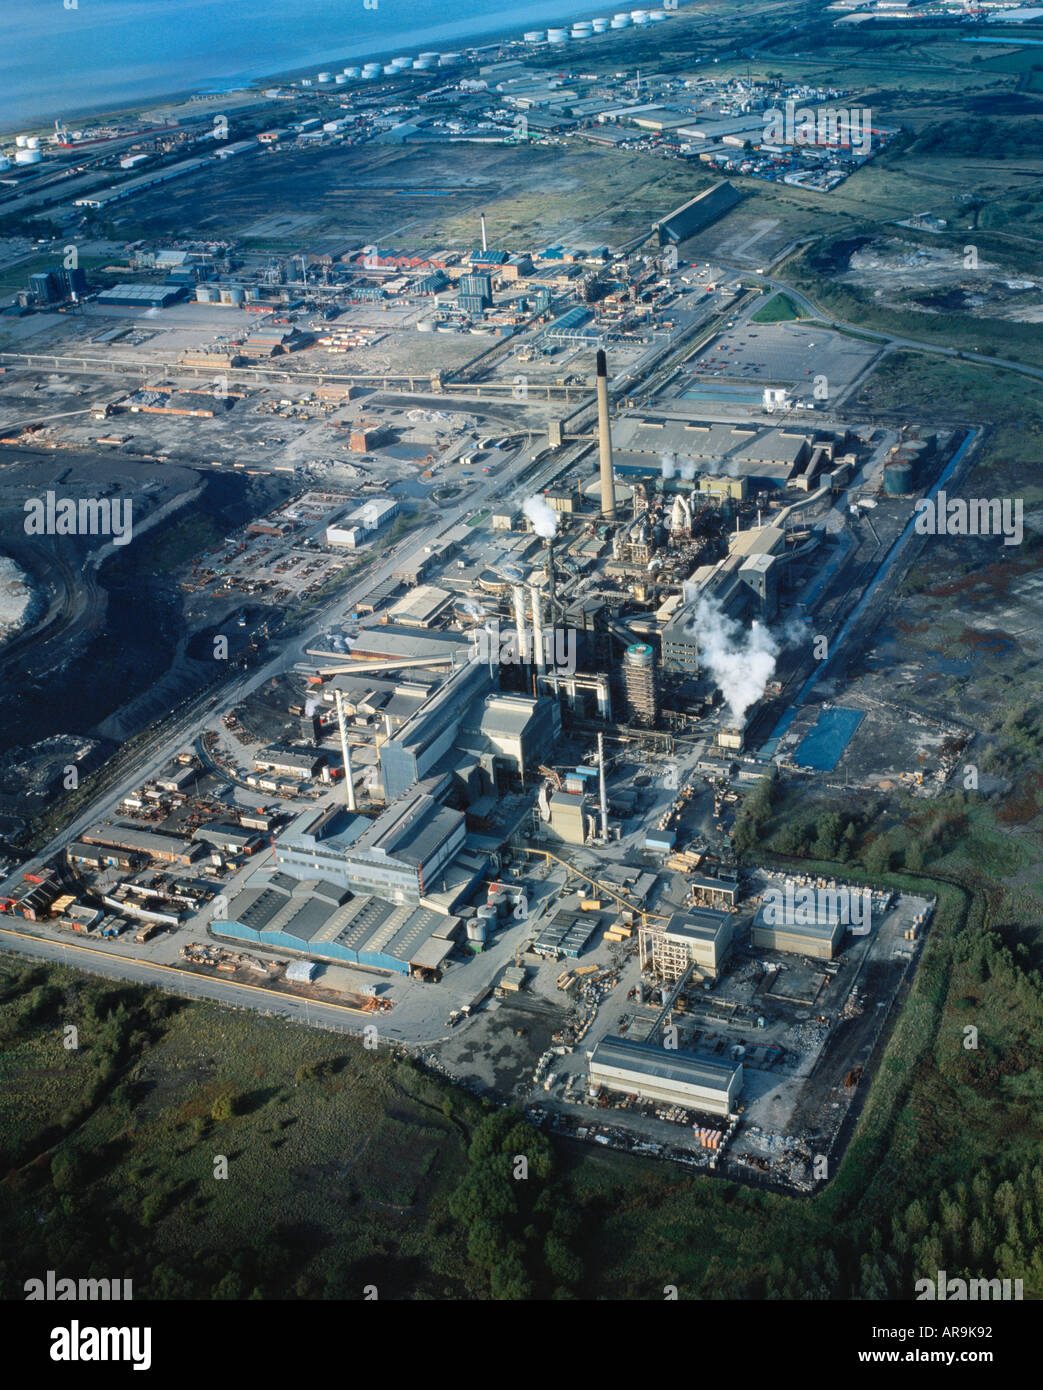 aerial view of zinc chemical works plant factory at Avonmouth near Bristol England UK - Stock Image